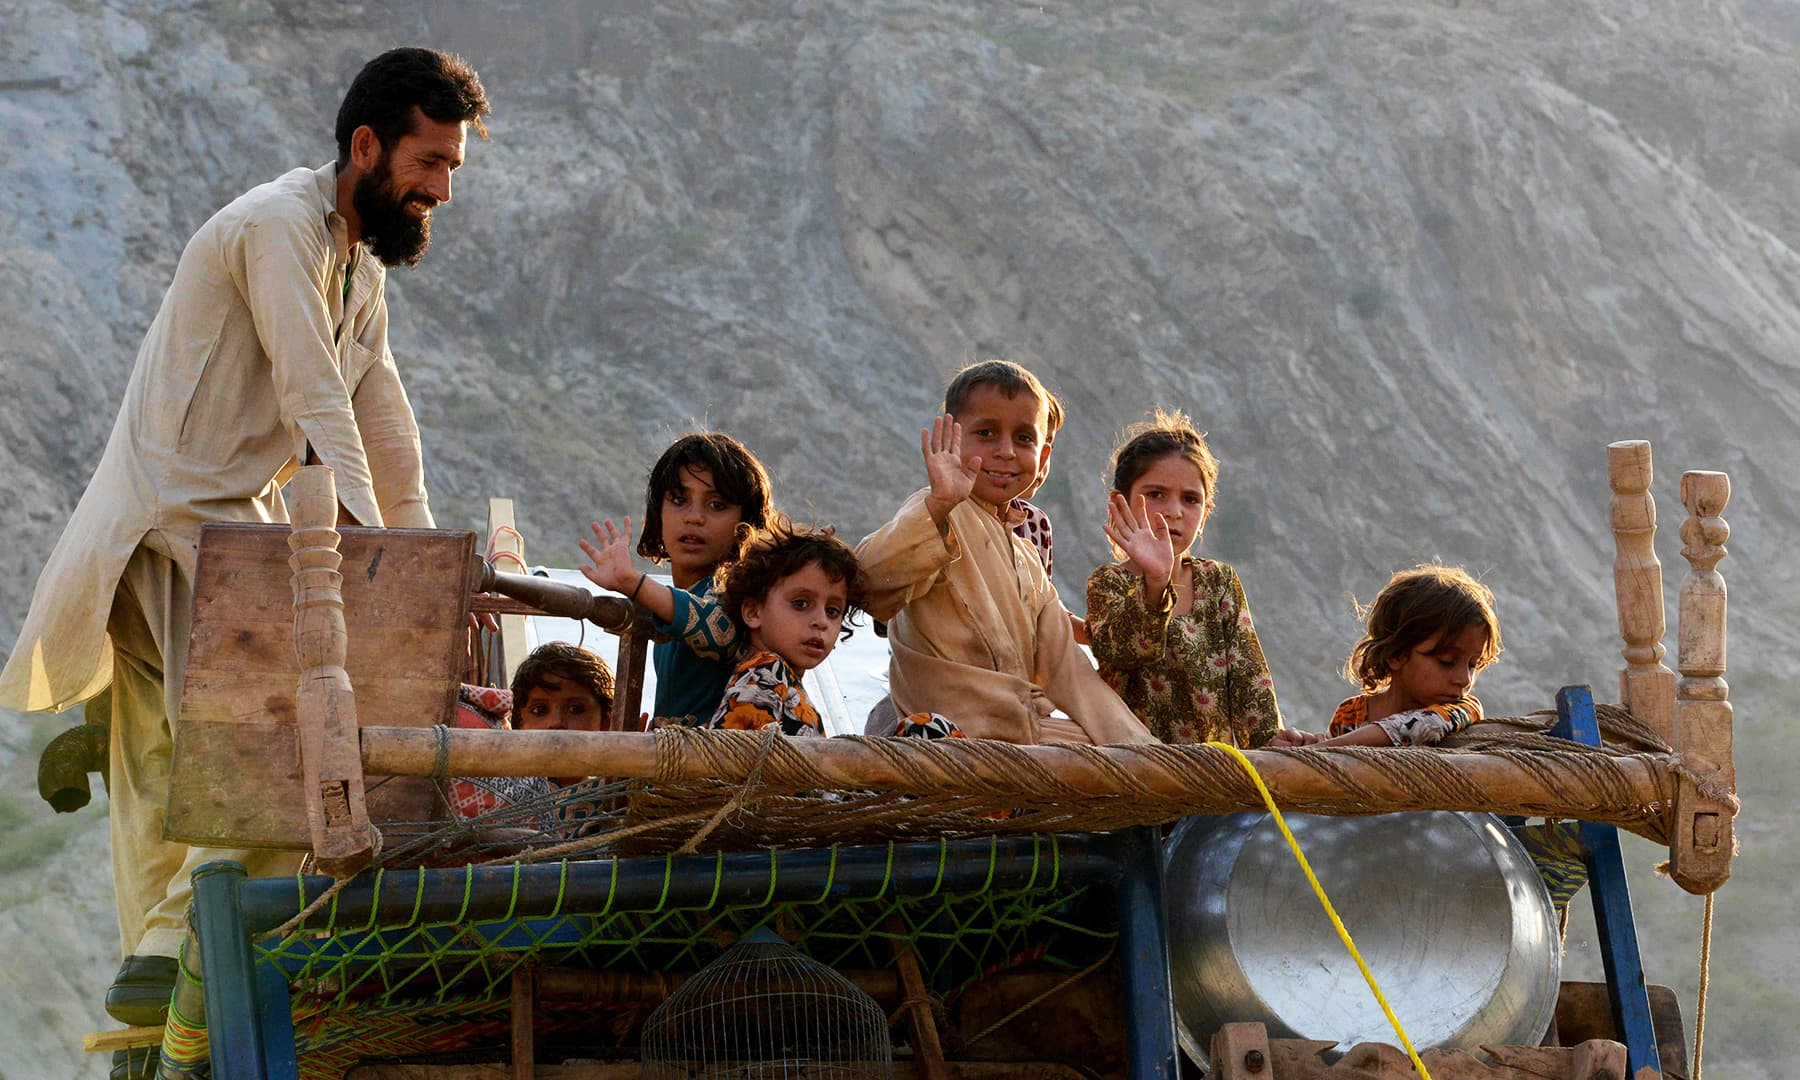 A repatriated Afghan refugee family travel on a loaded vehicle as they prepare to cross the border into Afghanistan, at the Torkham crossing point in Pakistan's tribal Khyber district. — AFP